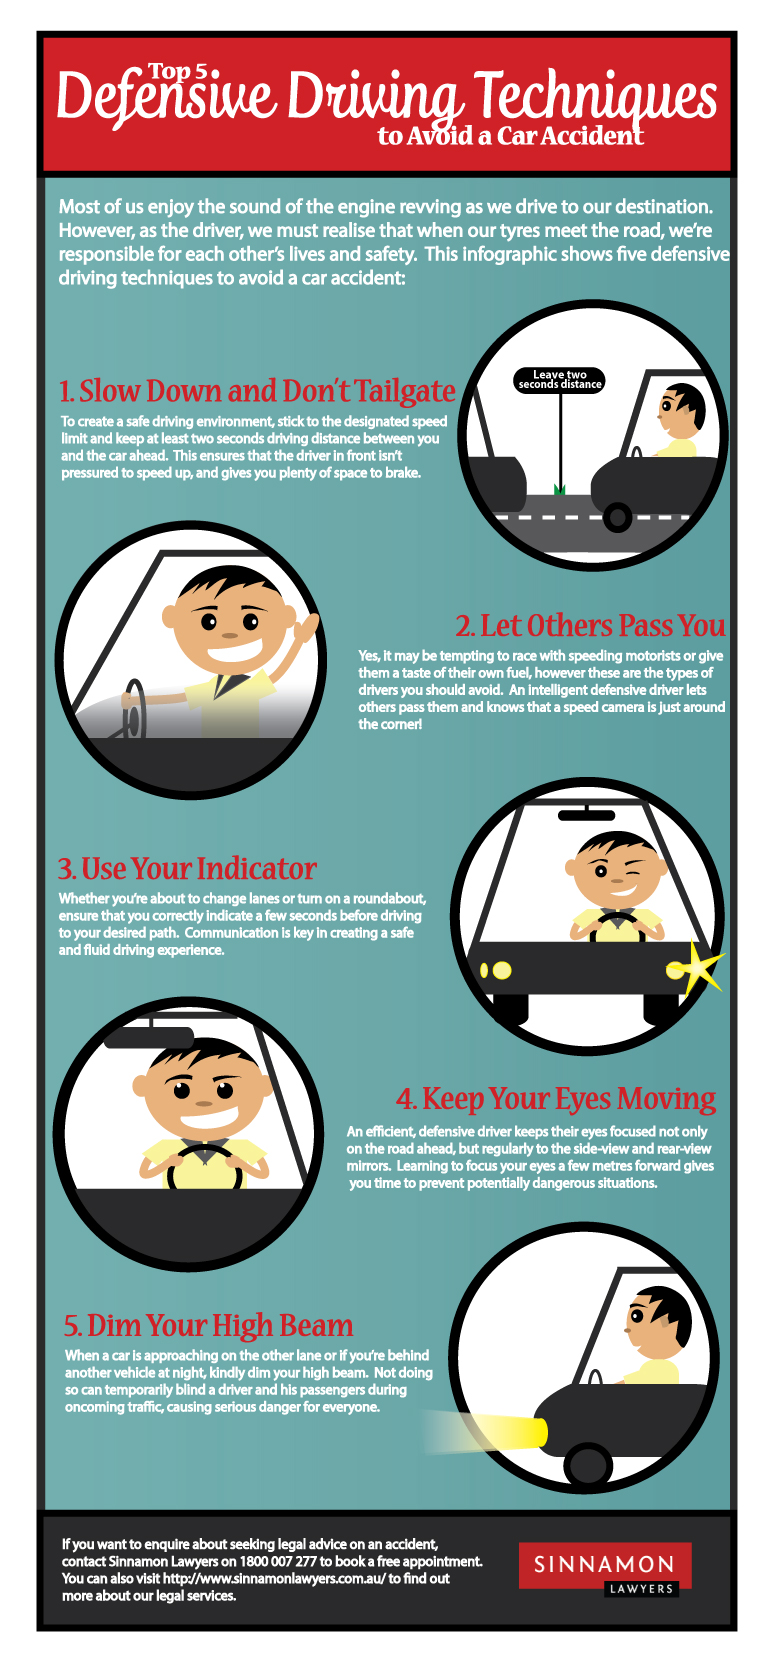 Top 5 Defensive Driving Techniques to Avoid a Car Accident